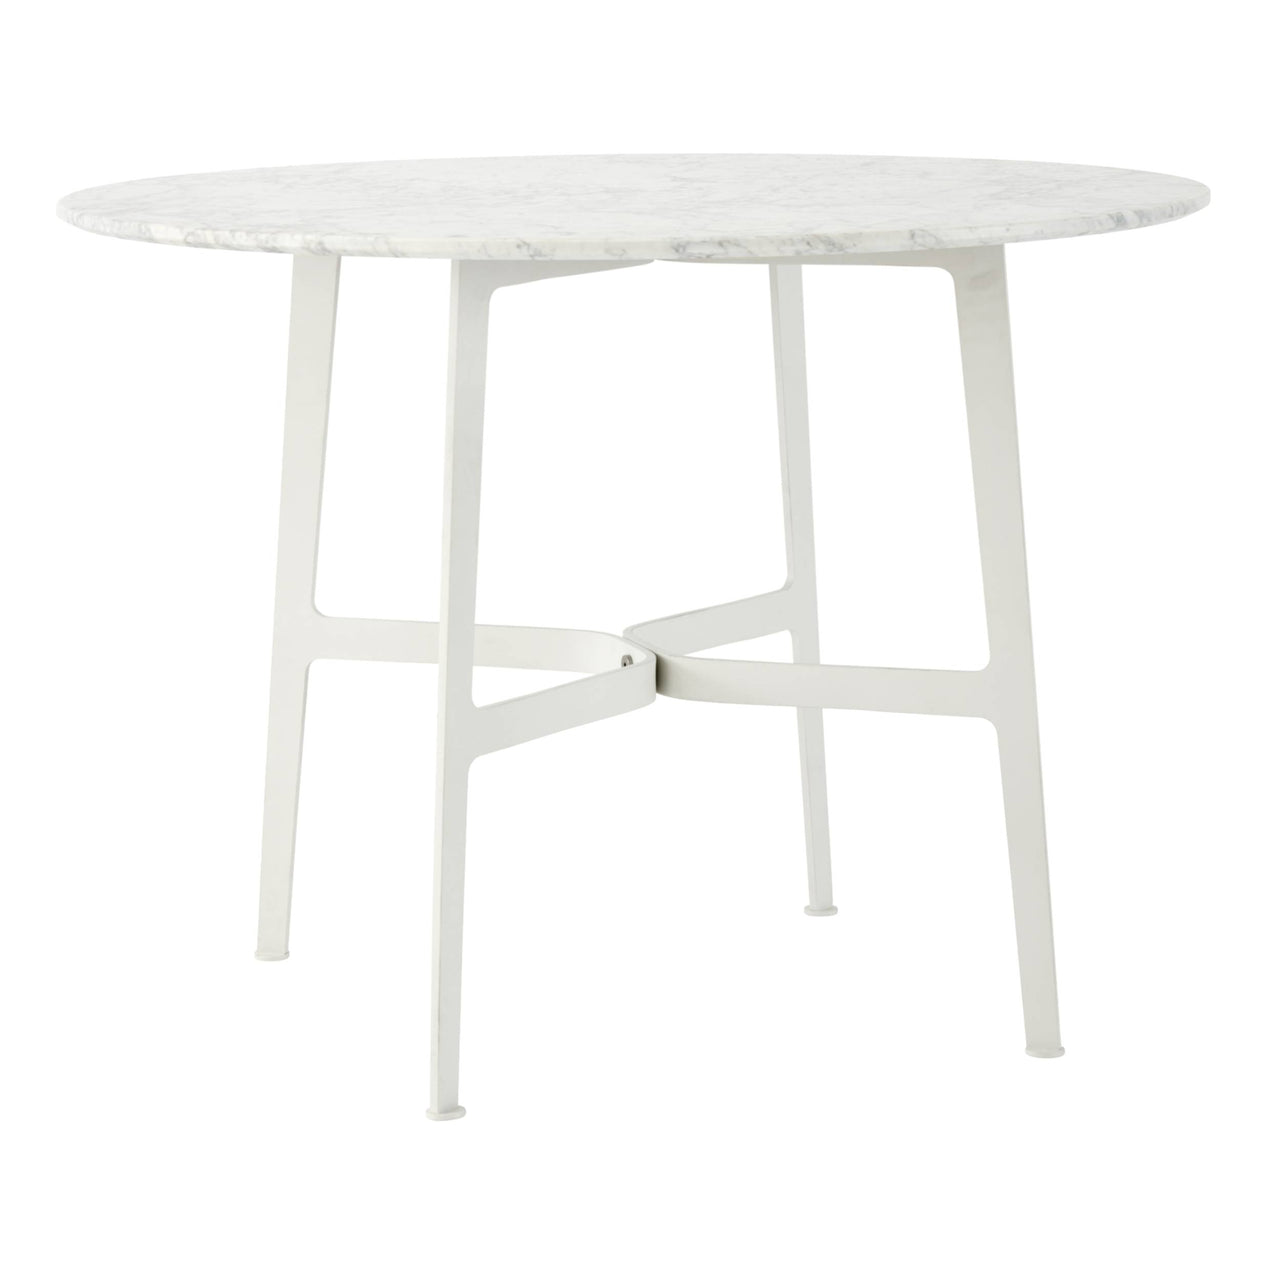 Eileen Circular Dining Table: Large + White + White Marble